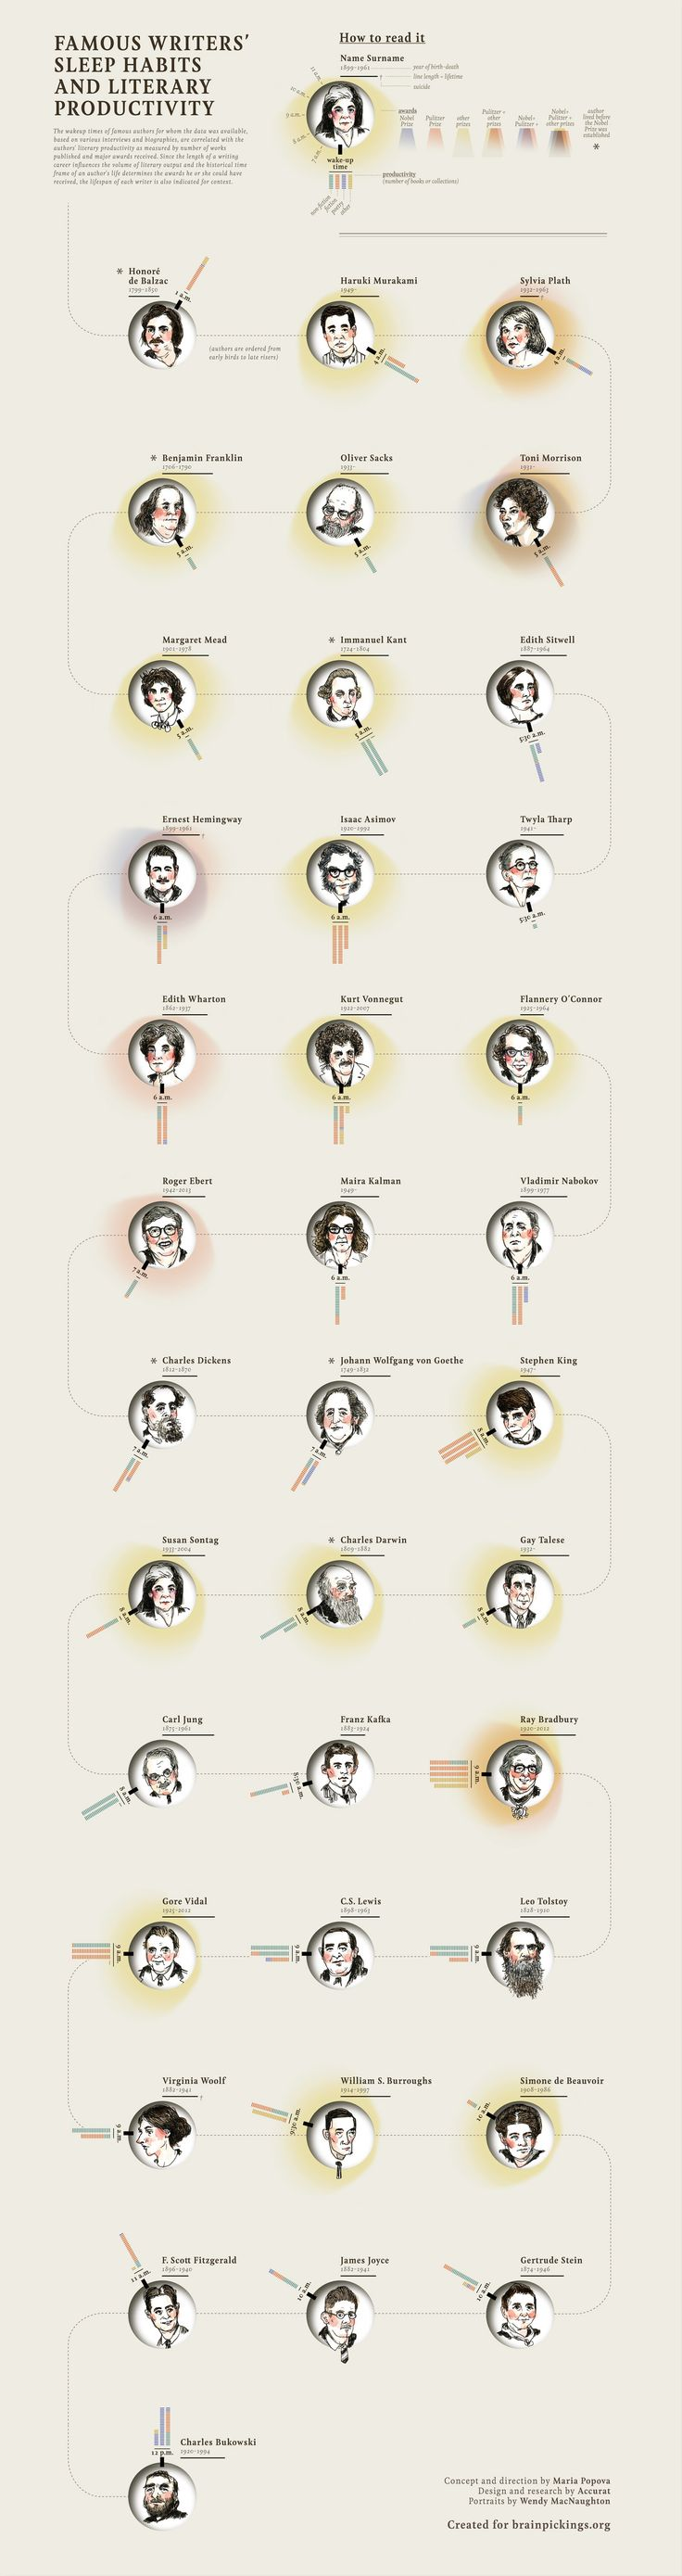 Famous Writers' Sleep Habits v. Literary Productivity, The early bird gets the Pulitzer … sort of.